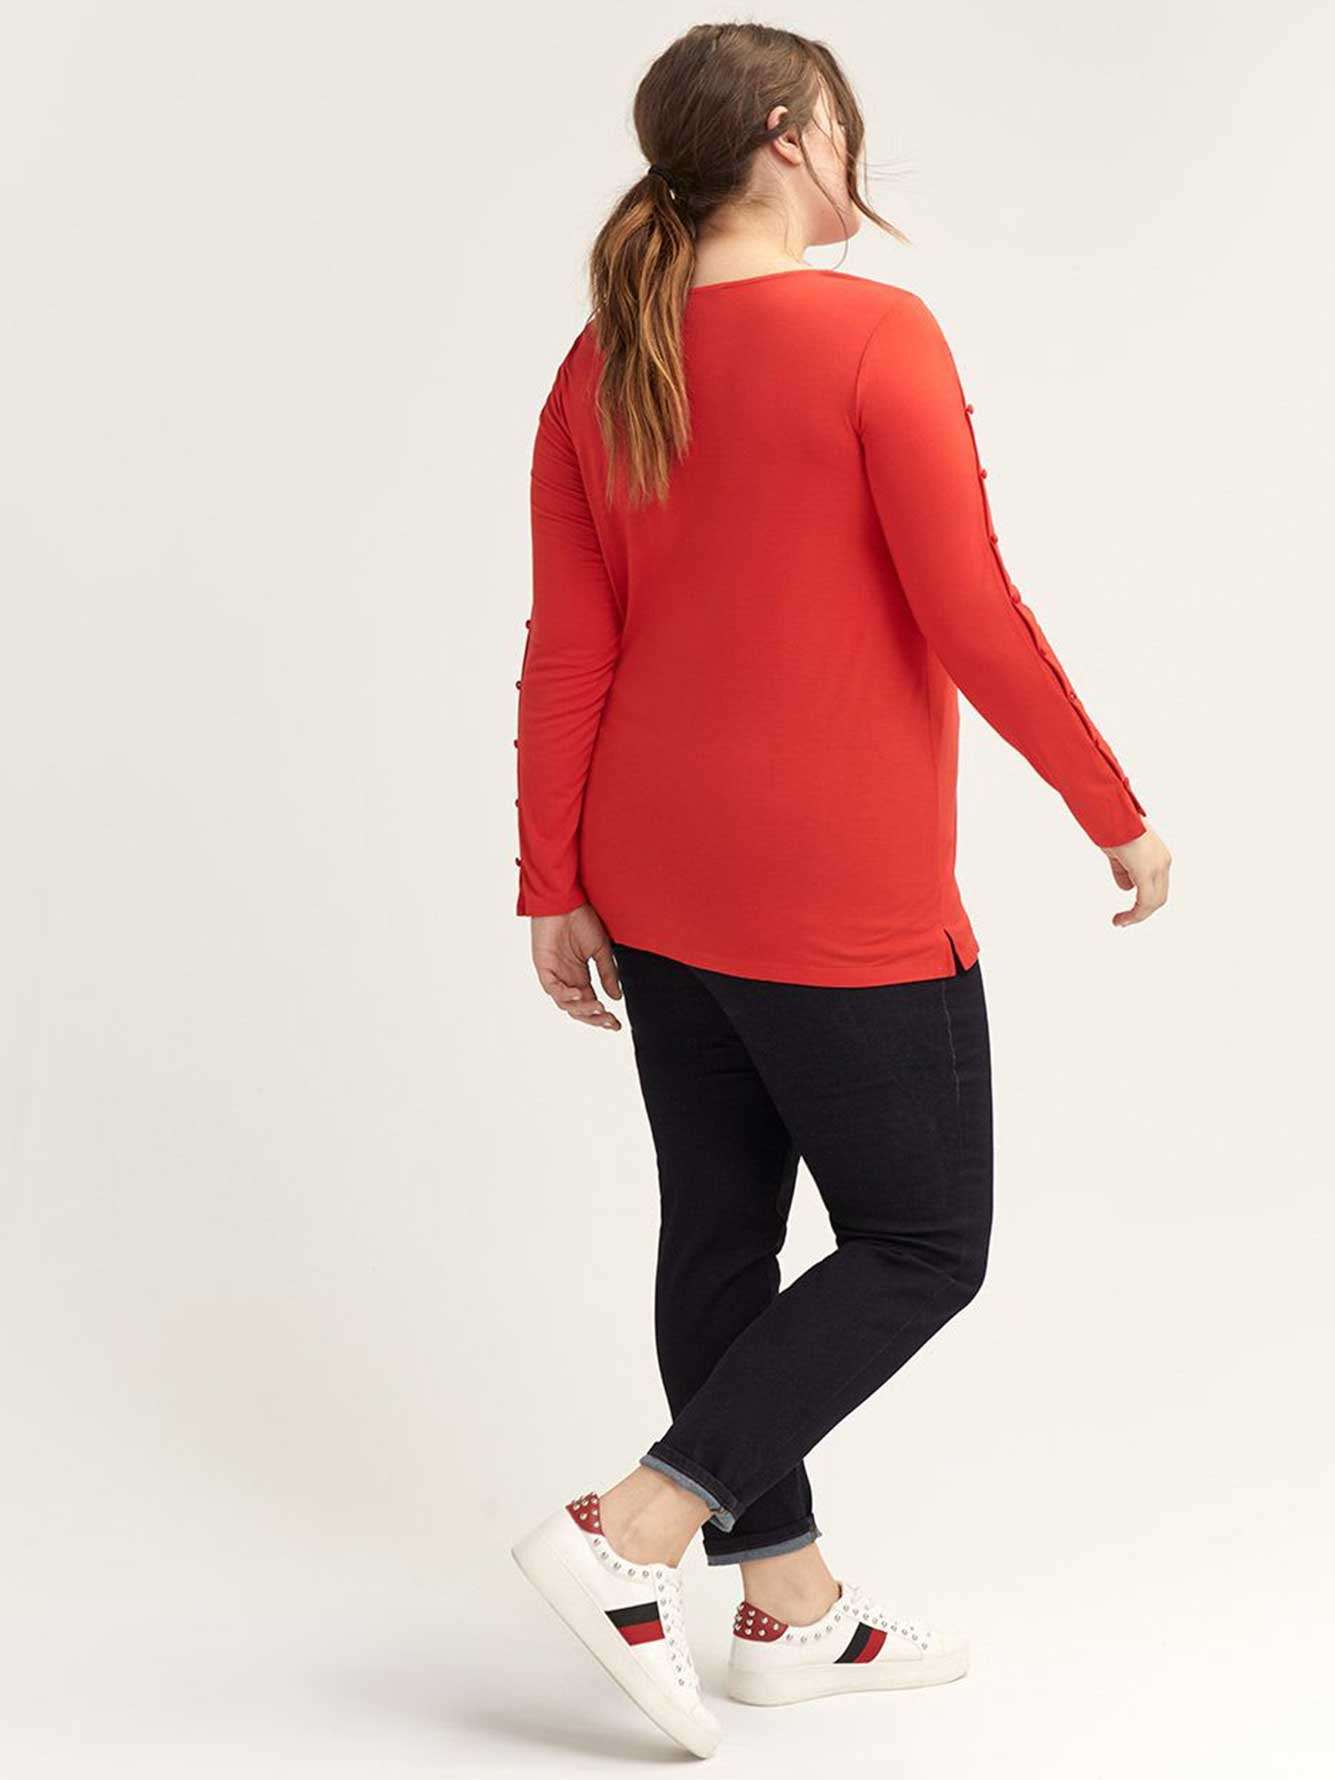 Scarlet Crew-Neck Top with Button-Embellished Sleeves - L&L